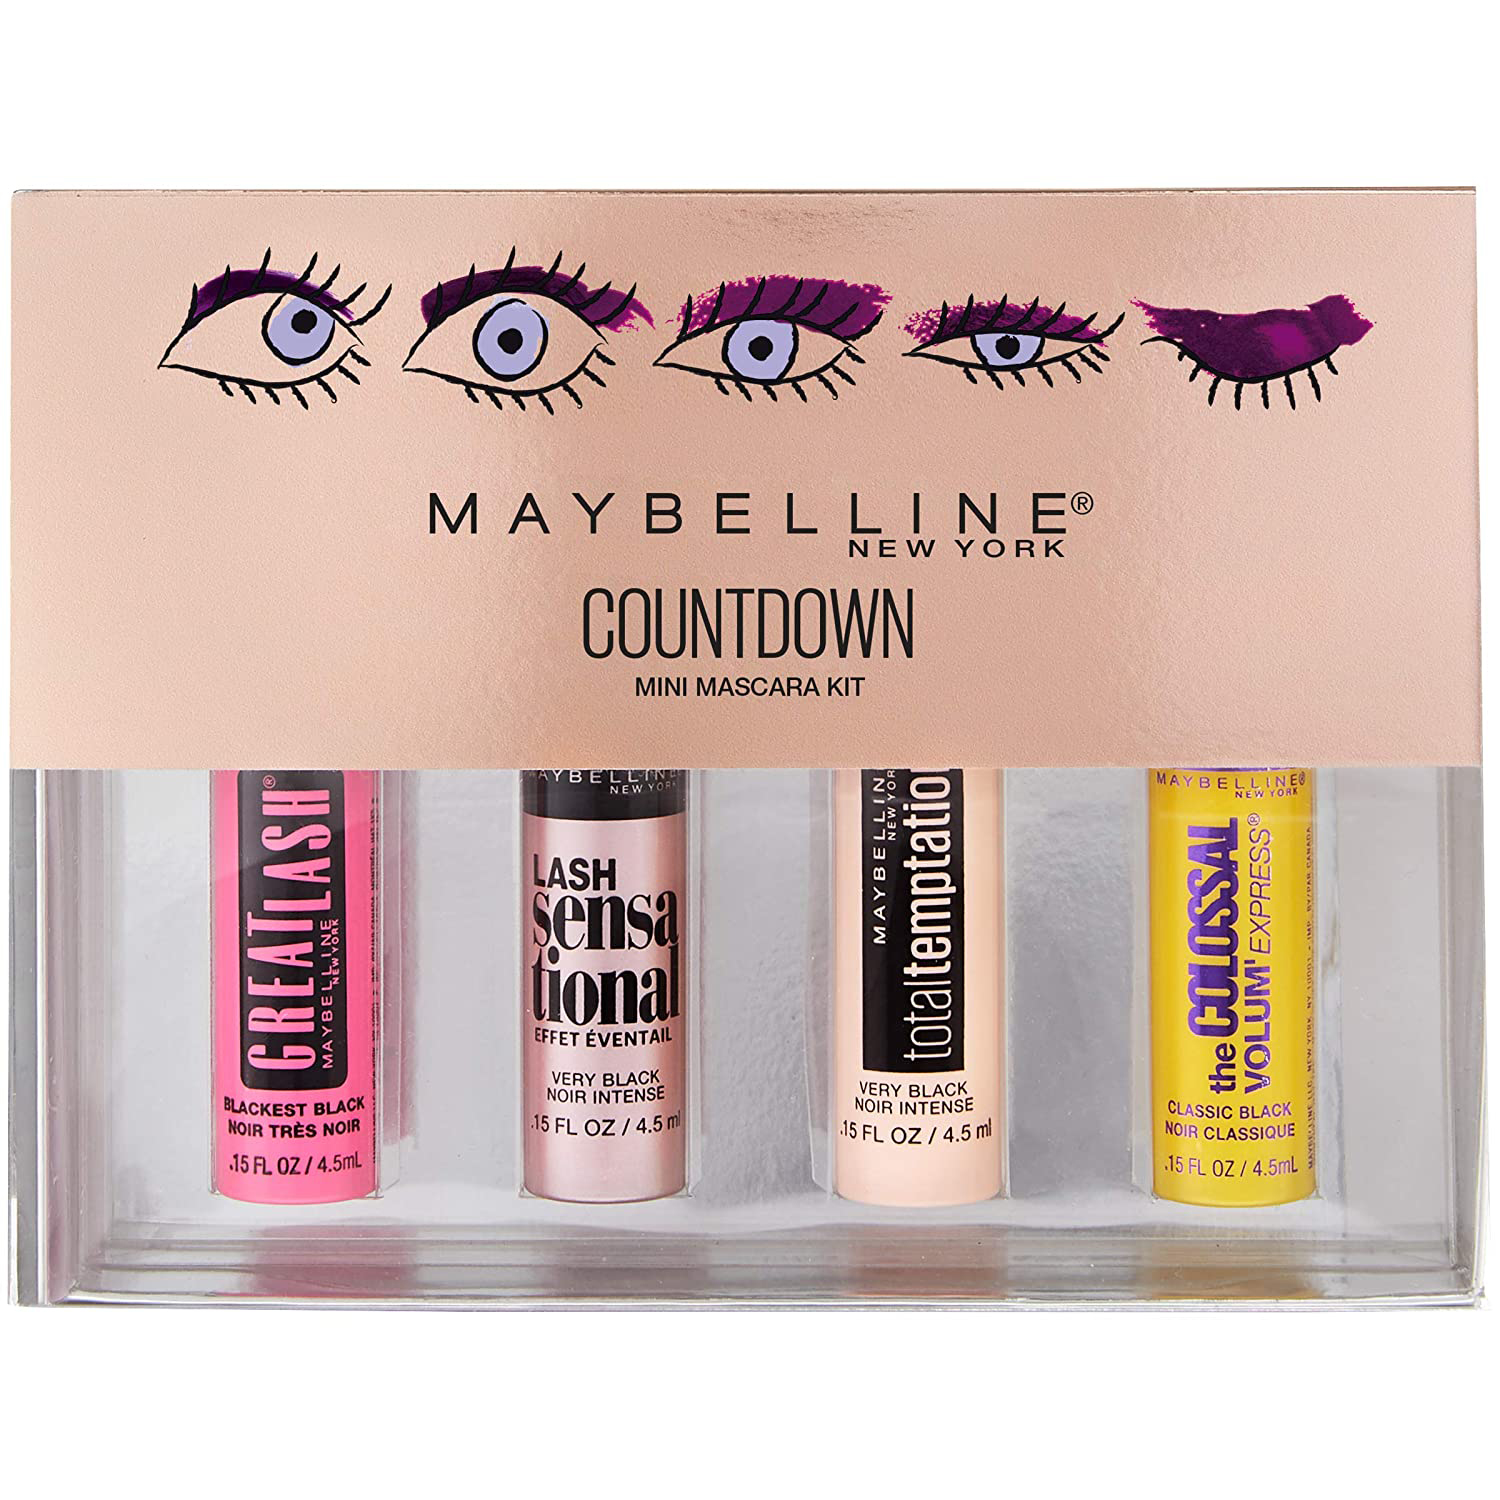 maybelline new york makeup countdown holiday mascara kit